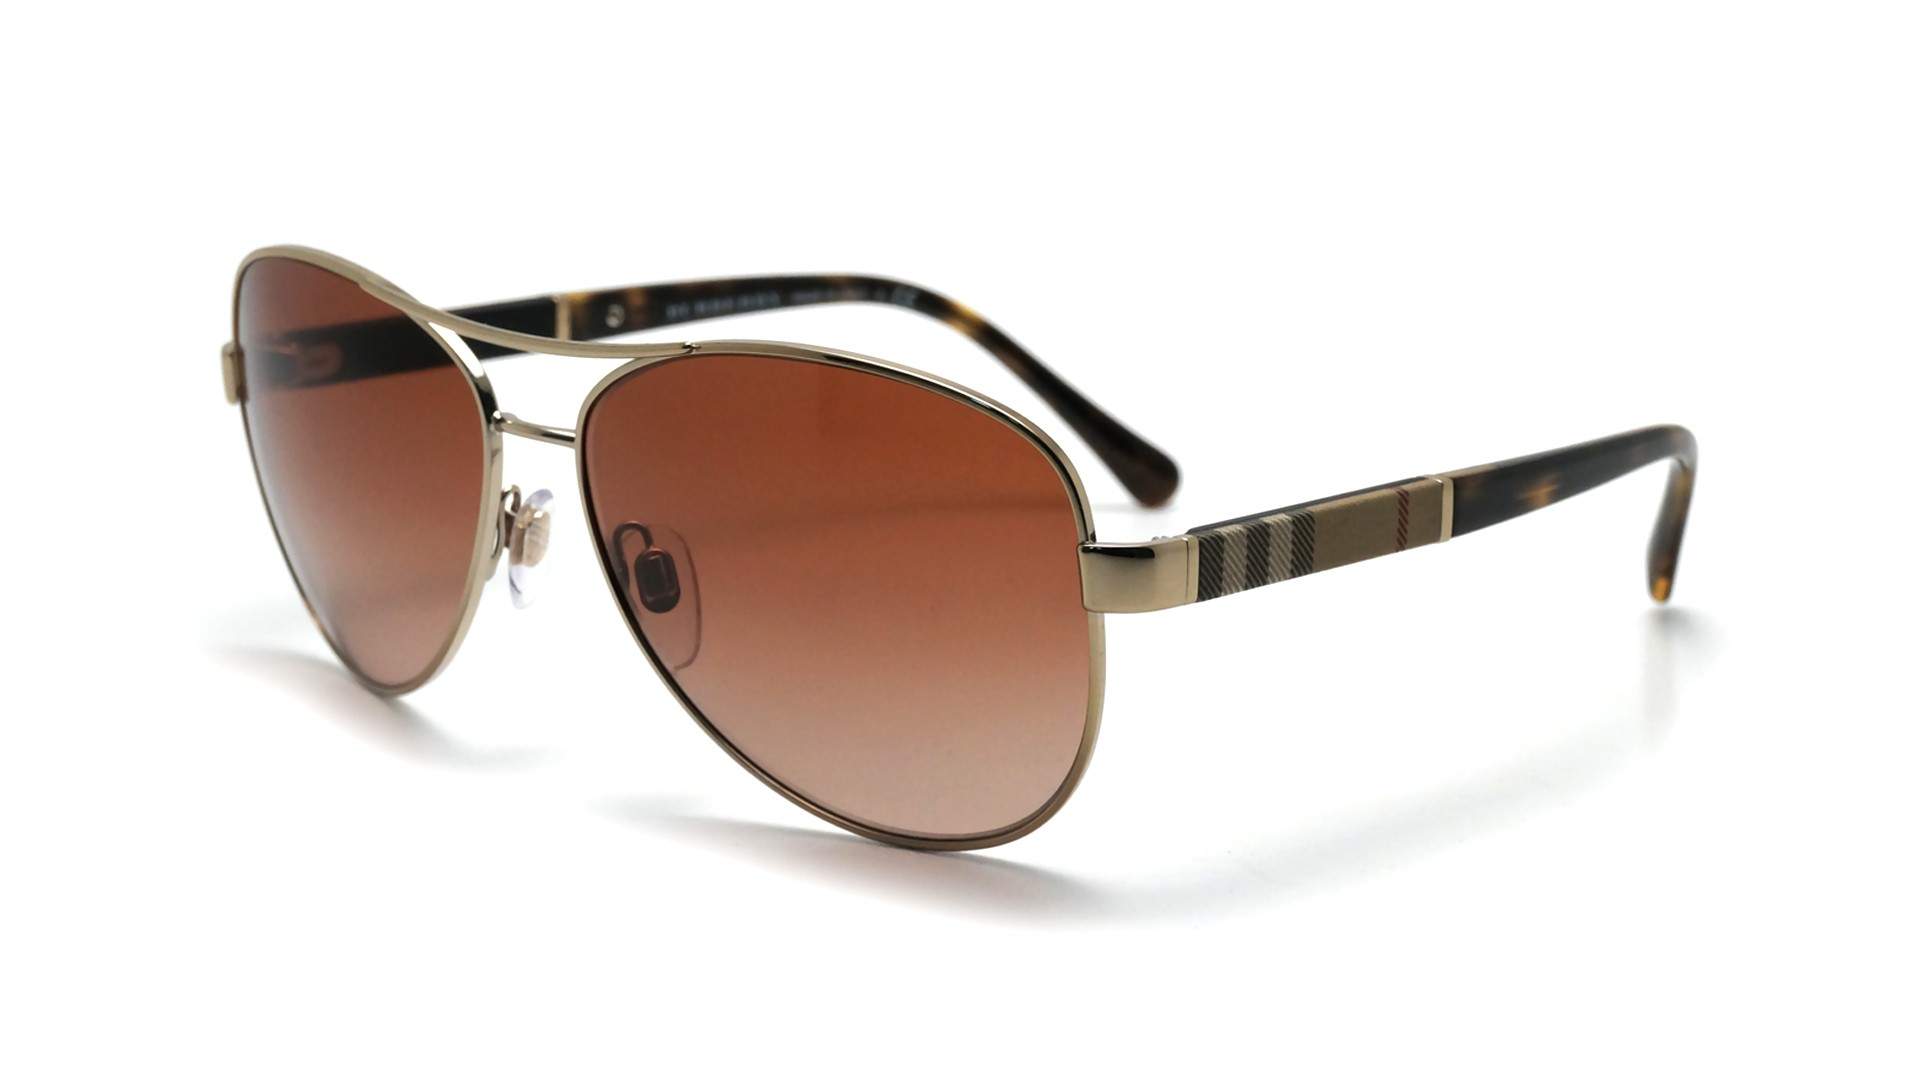 e163fe828f58 Lunettes de soleil Burberry Or BE3080 114513 59-14 | Visiofactory